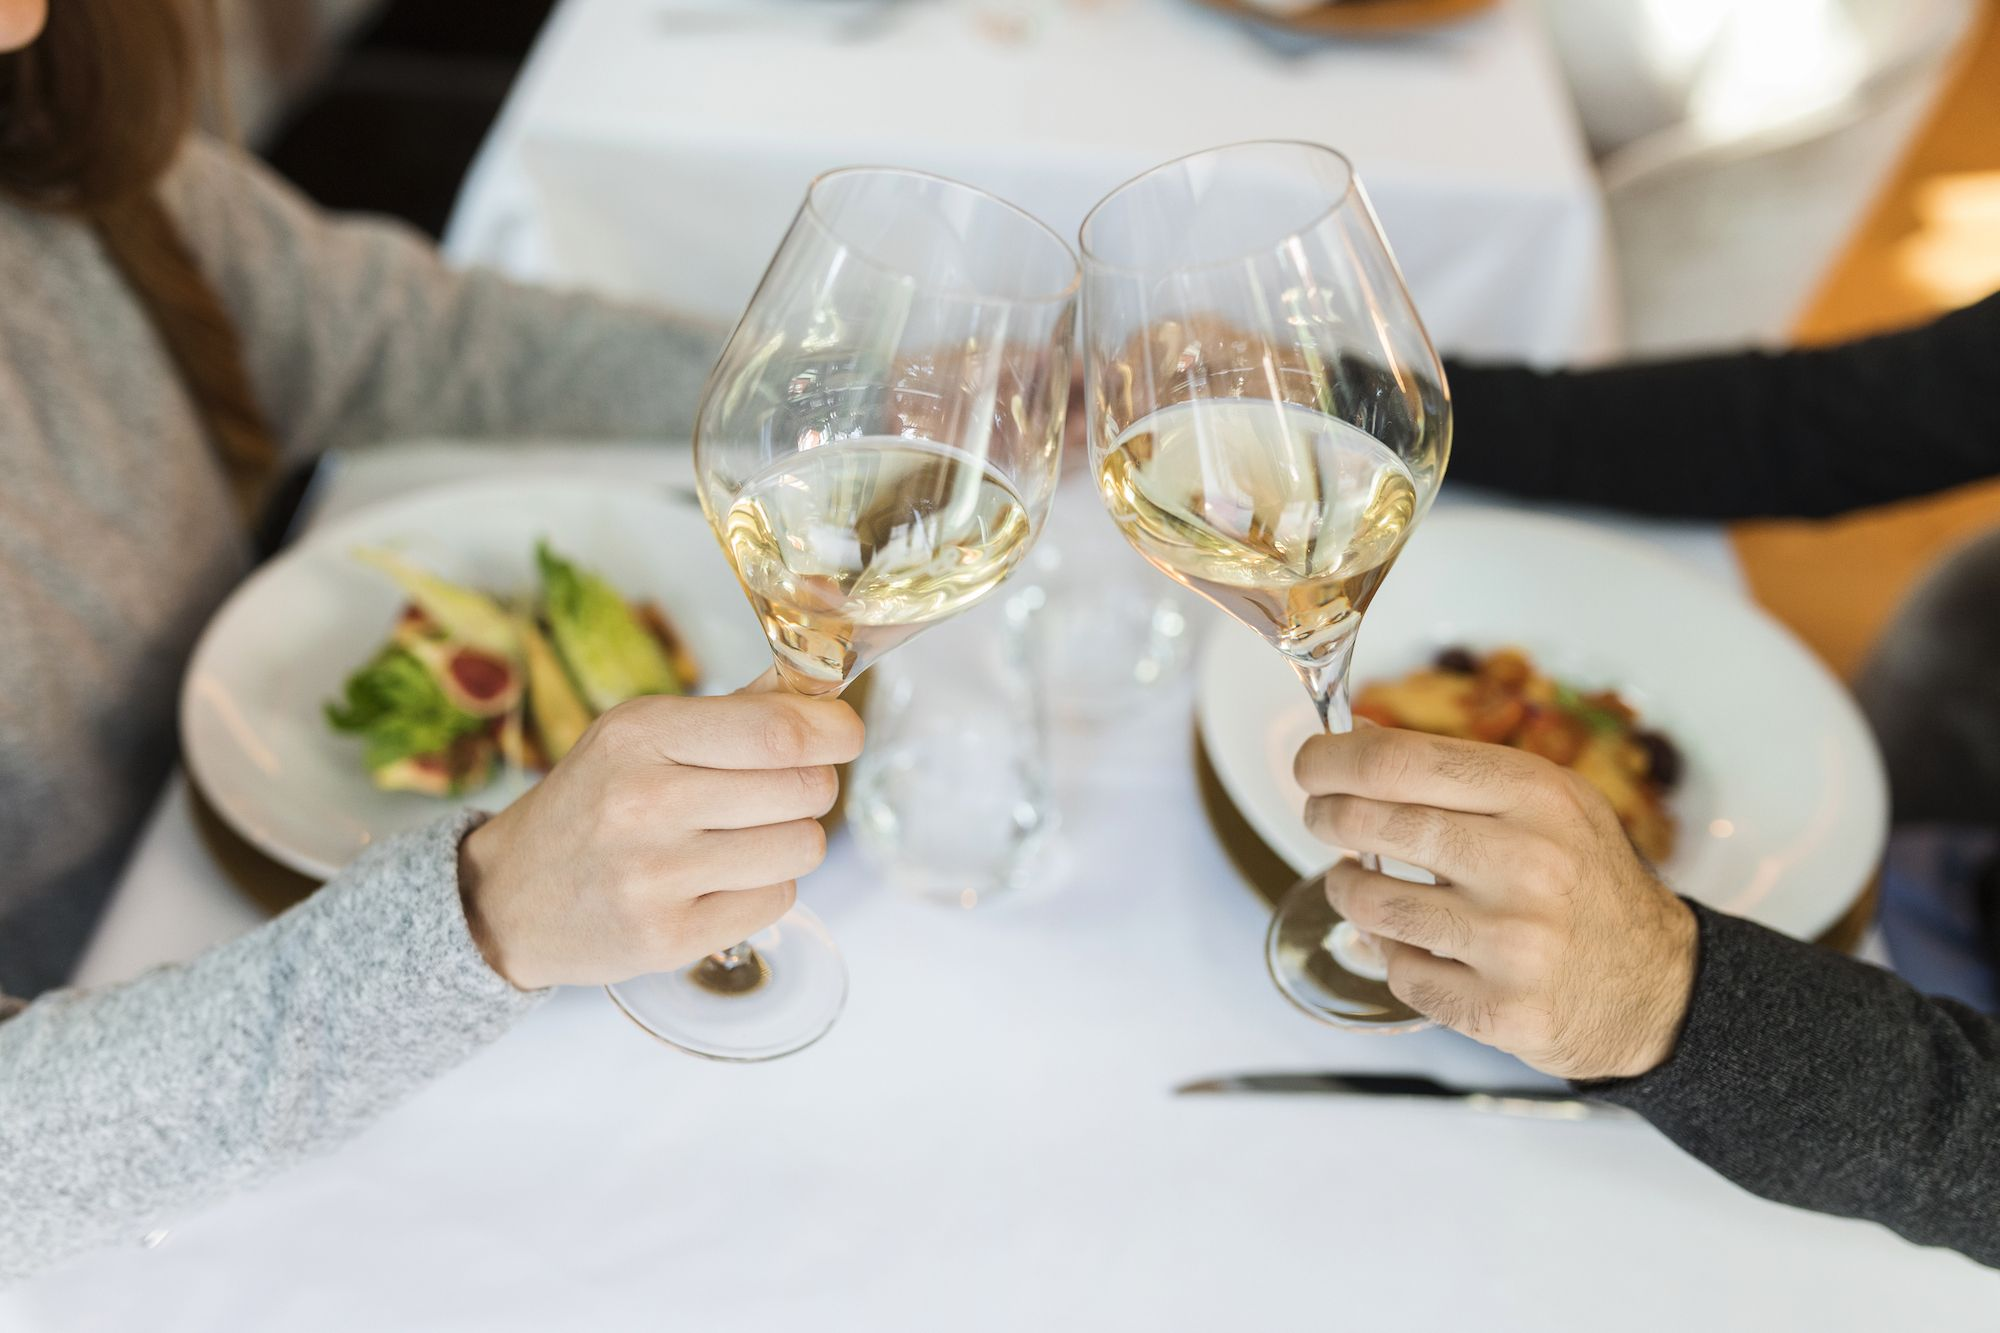 3 Local Dishes To Pair With White Burgundy